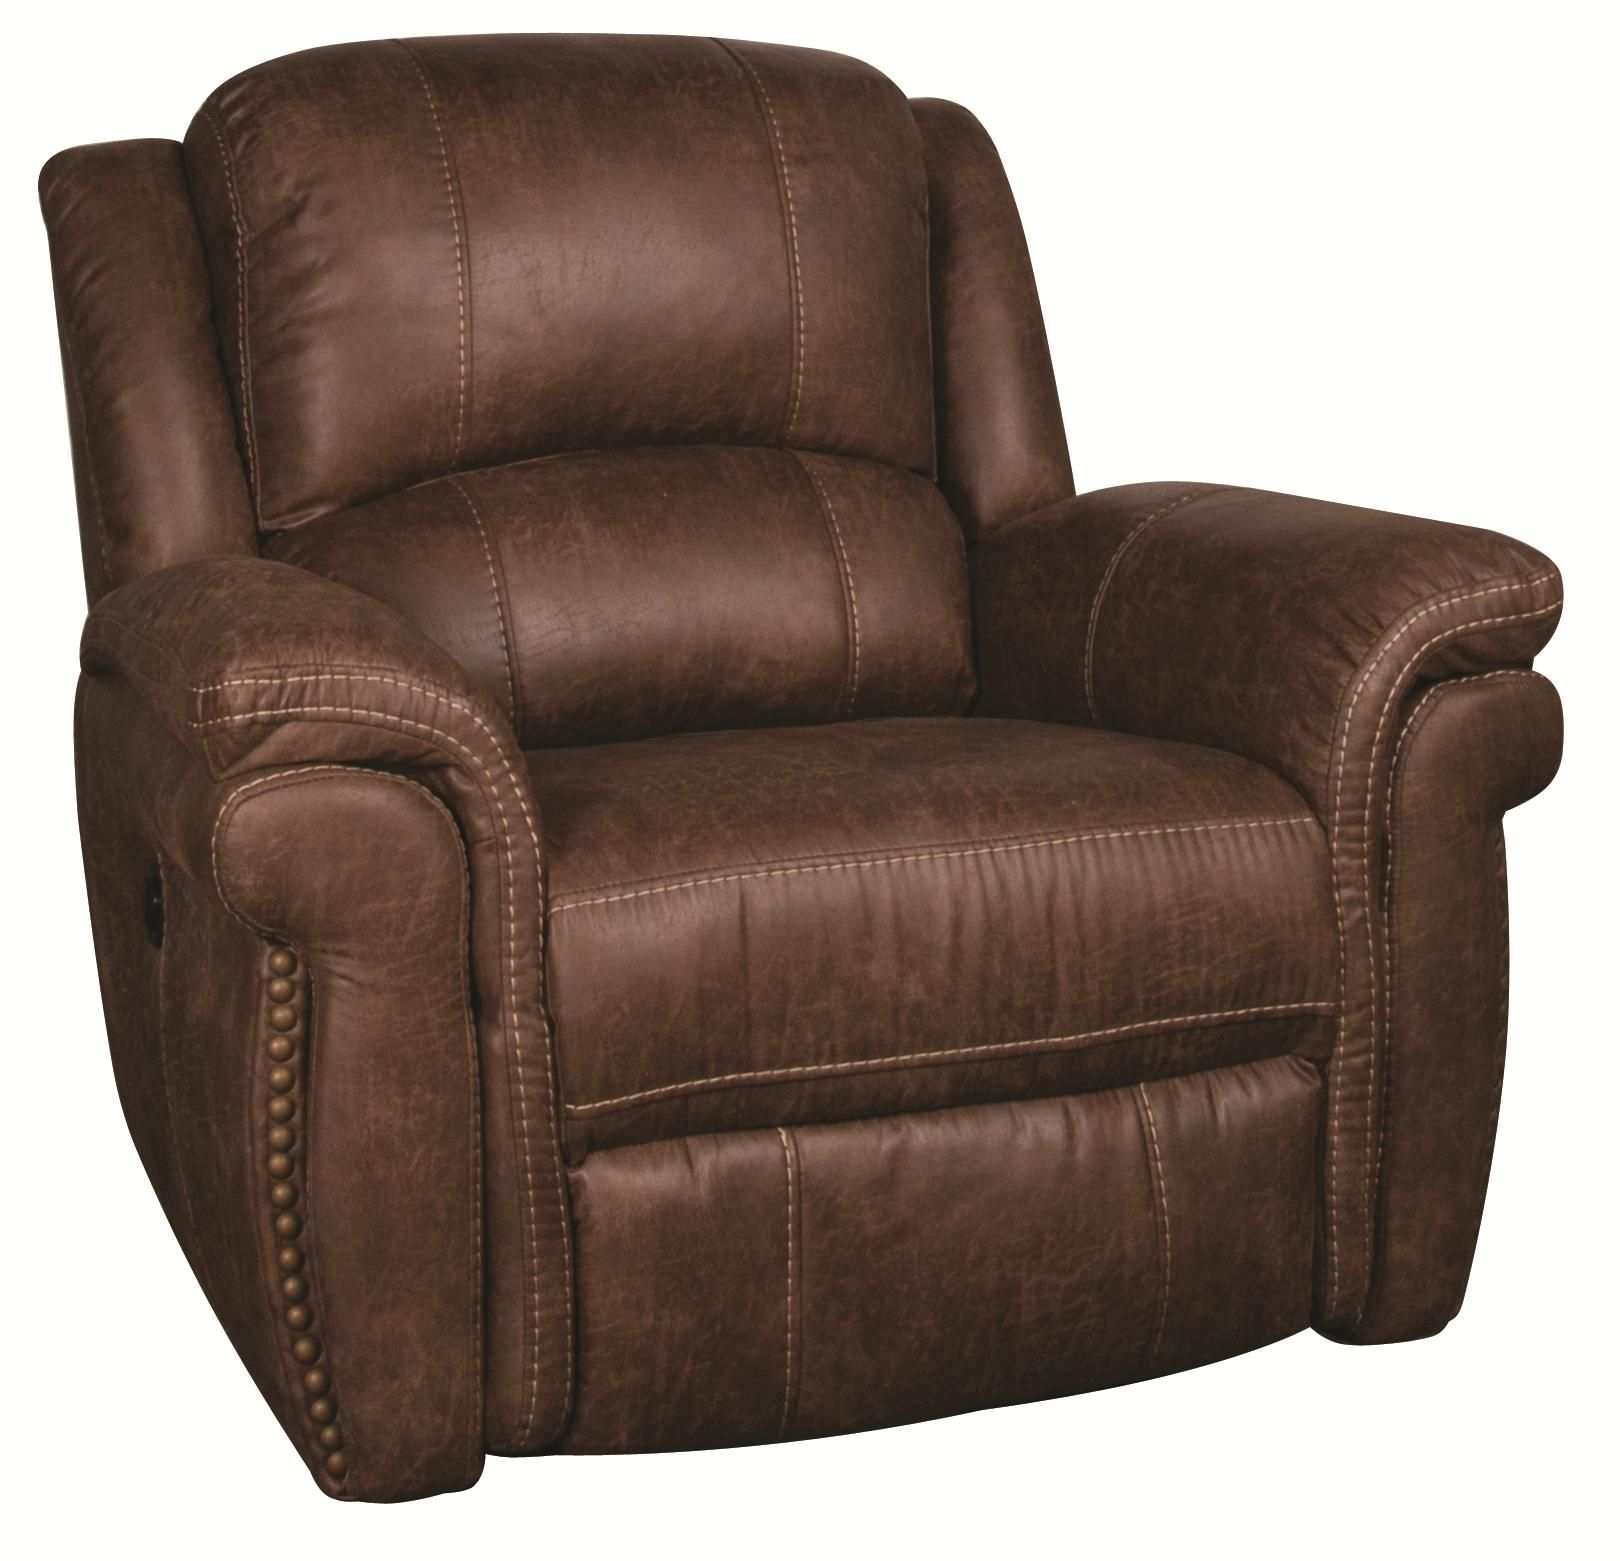 Shop For The Beau Power Recliner At Morris Home